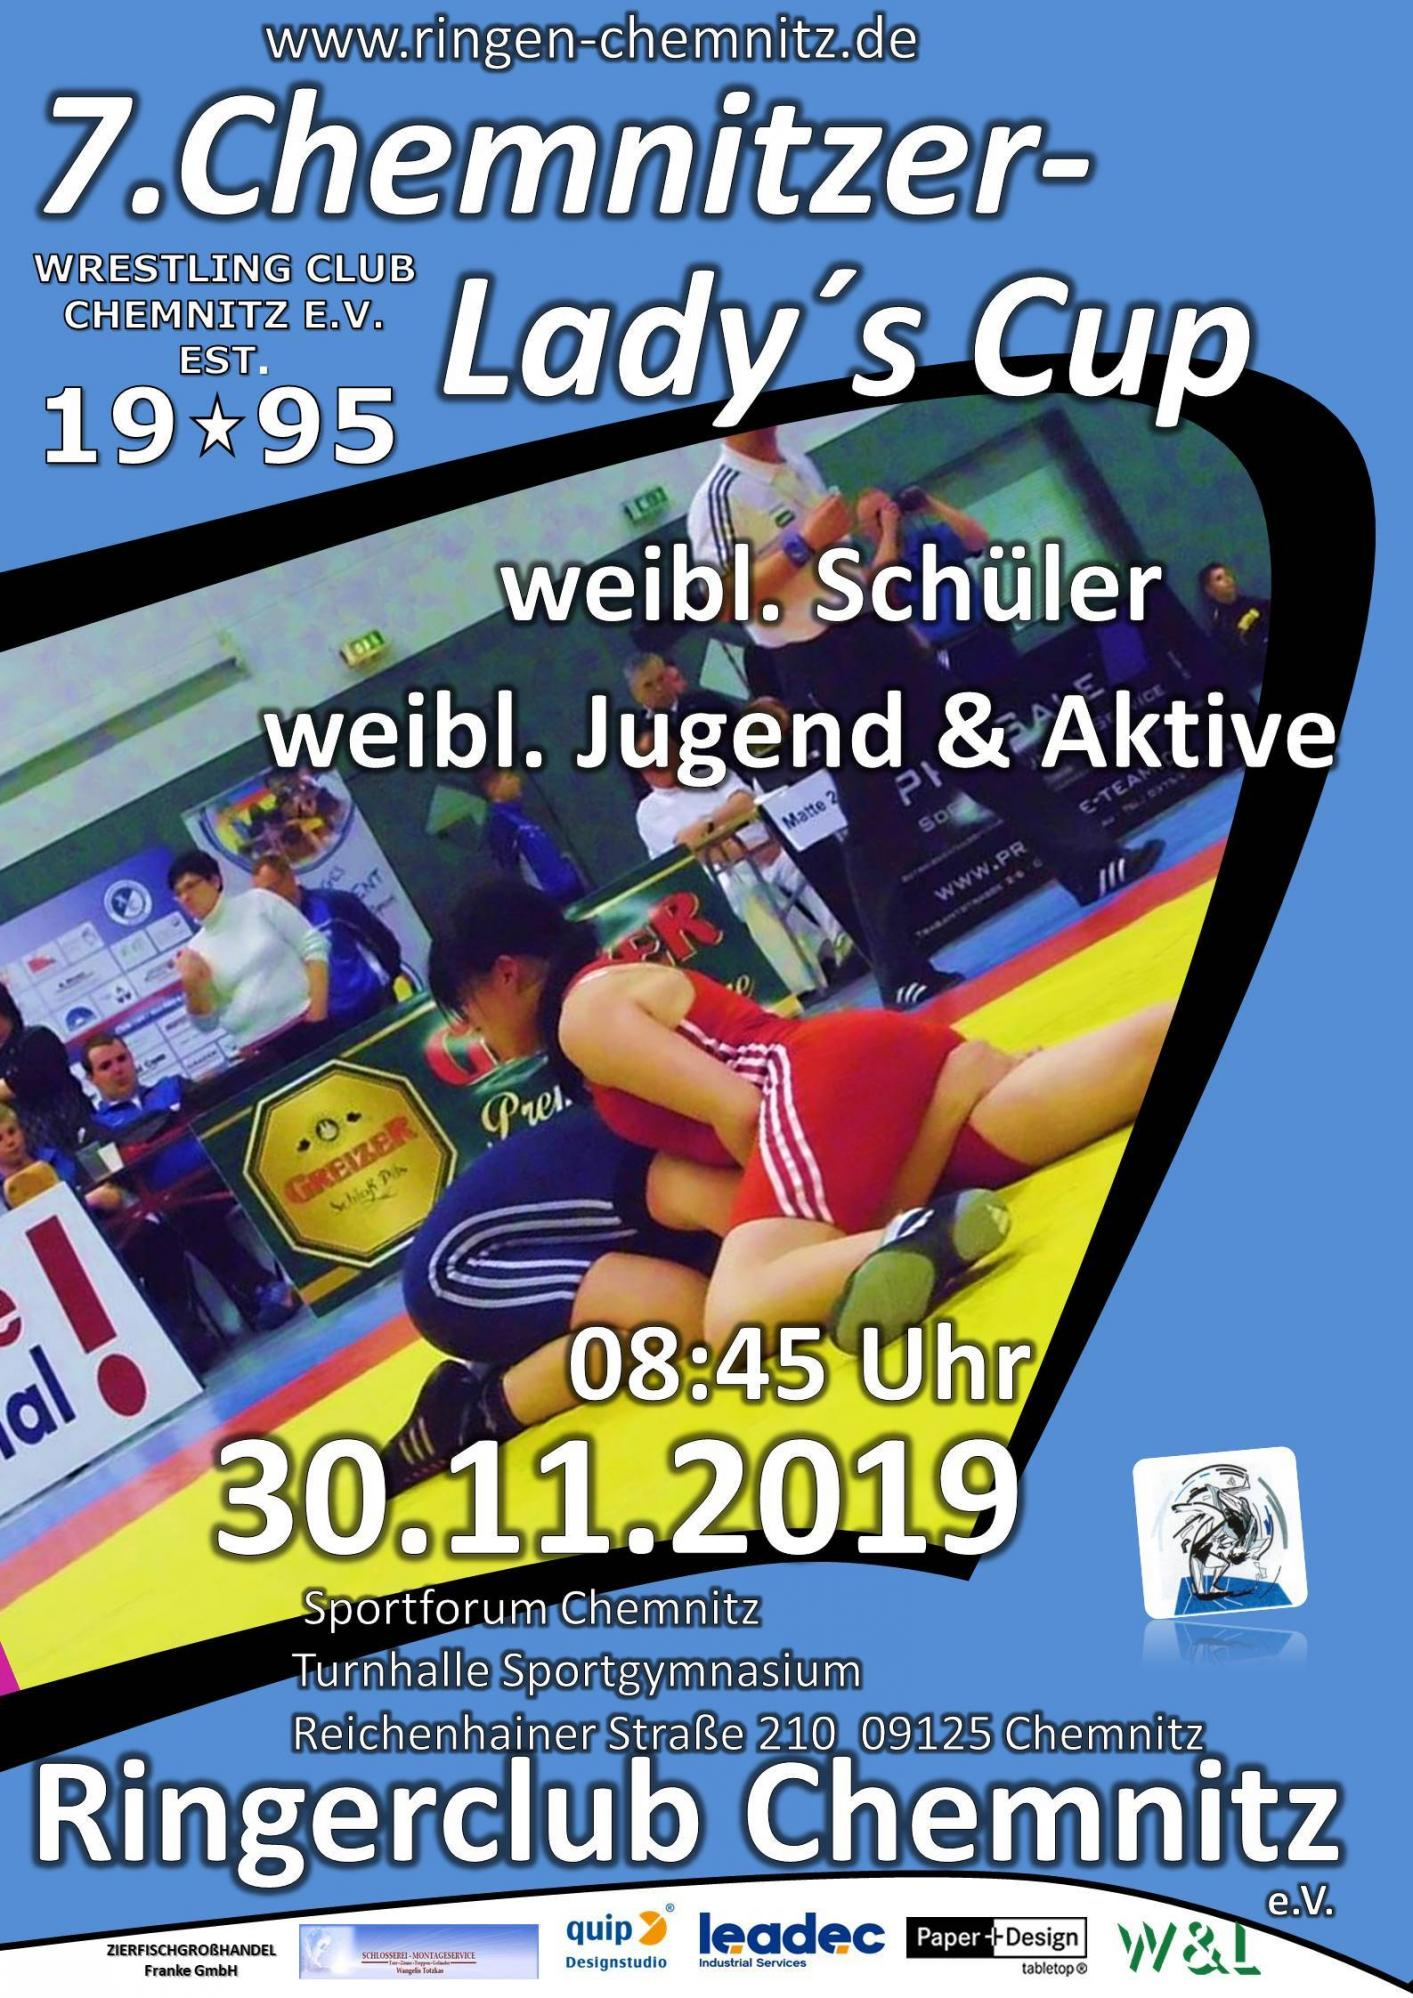 7. Chemnitzer Lady's Cup